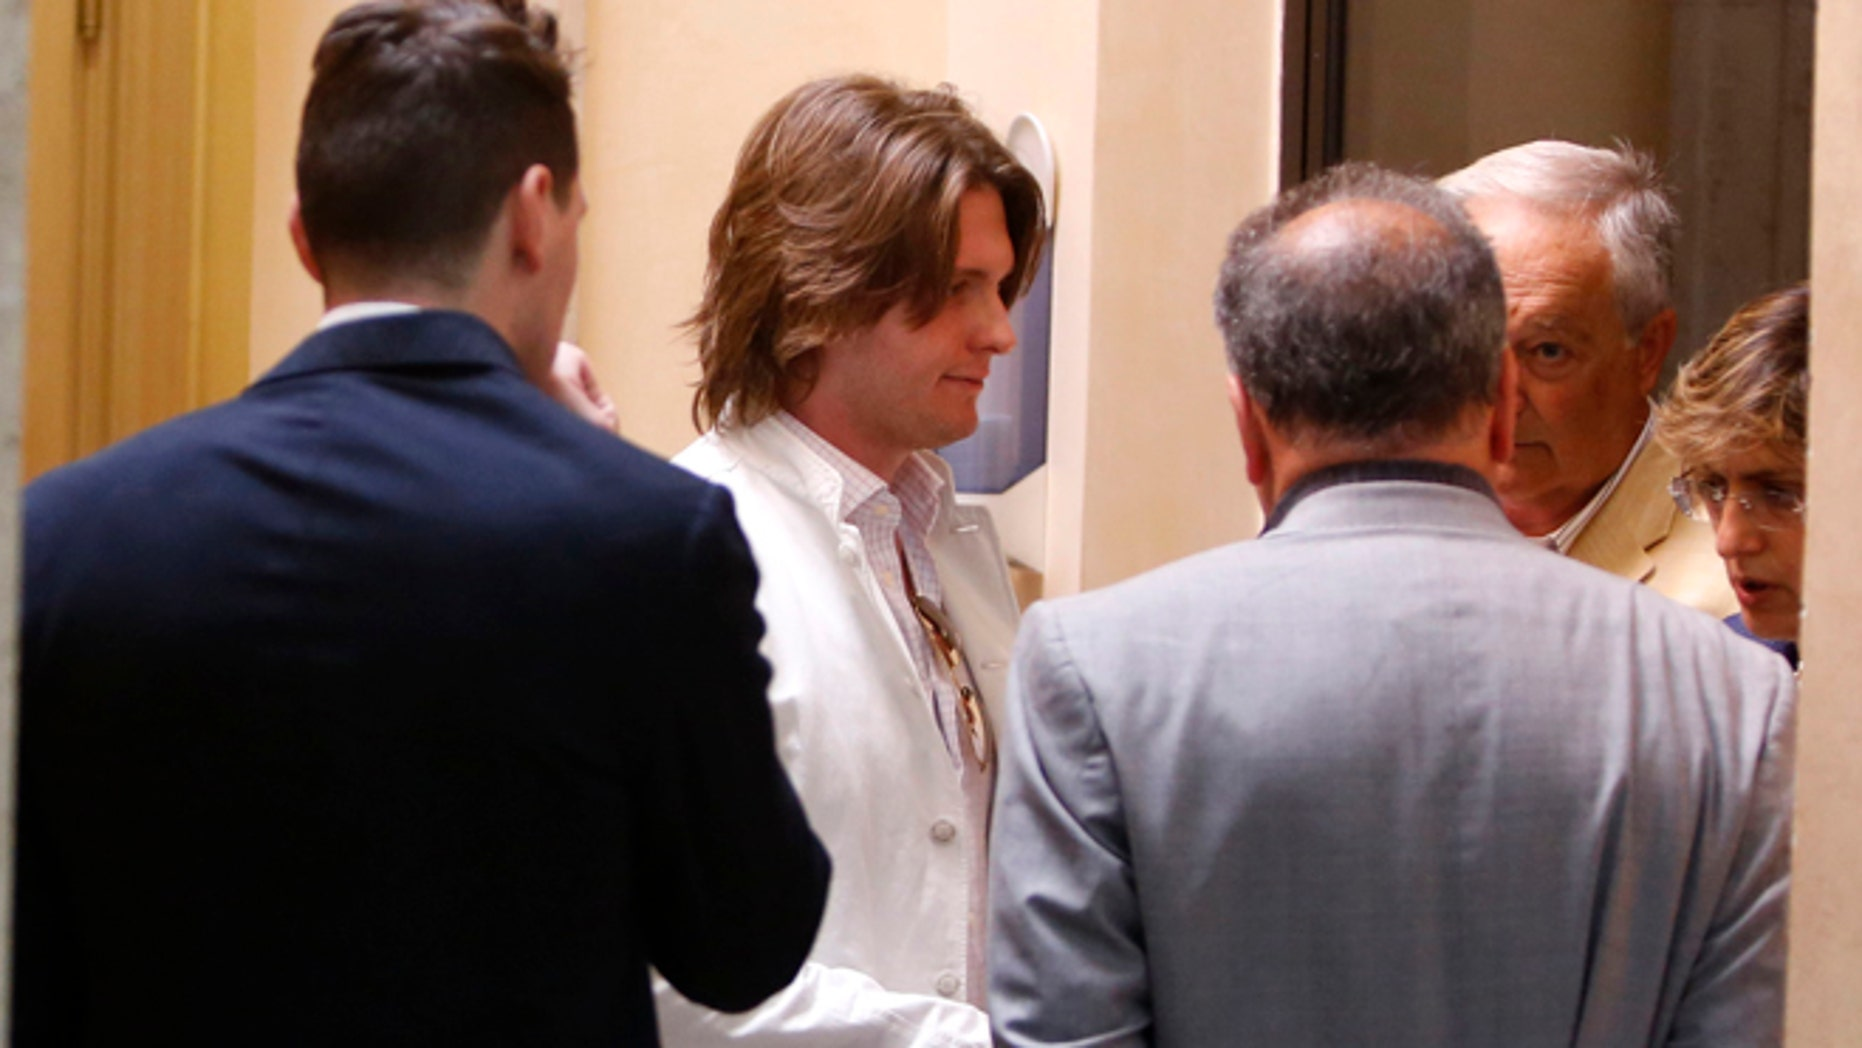 July 1, 2014: Raffaele Sollecito, second from left, and his father Francesco, second from right, listen to lawyers Luca Mauri, center with gray suit, and Giulia Bongiorno, right, before giving a press conference in Rome. (AP)